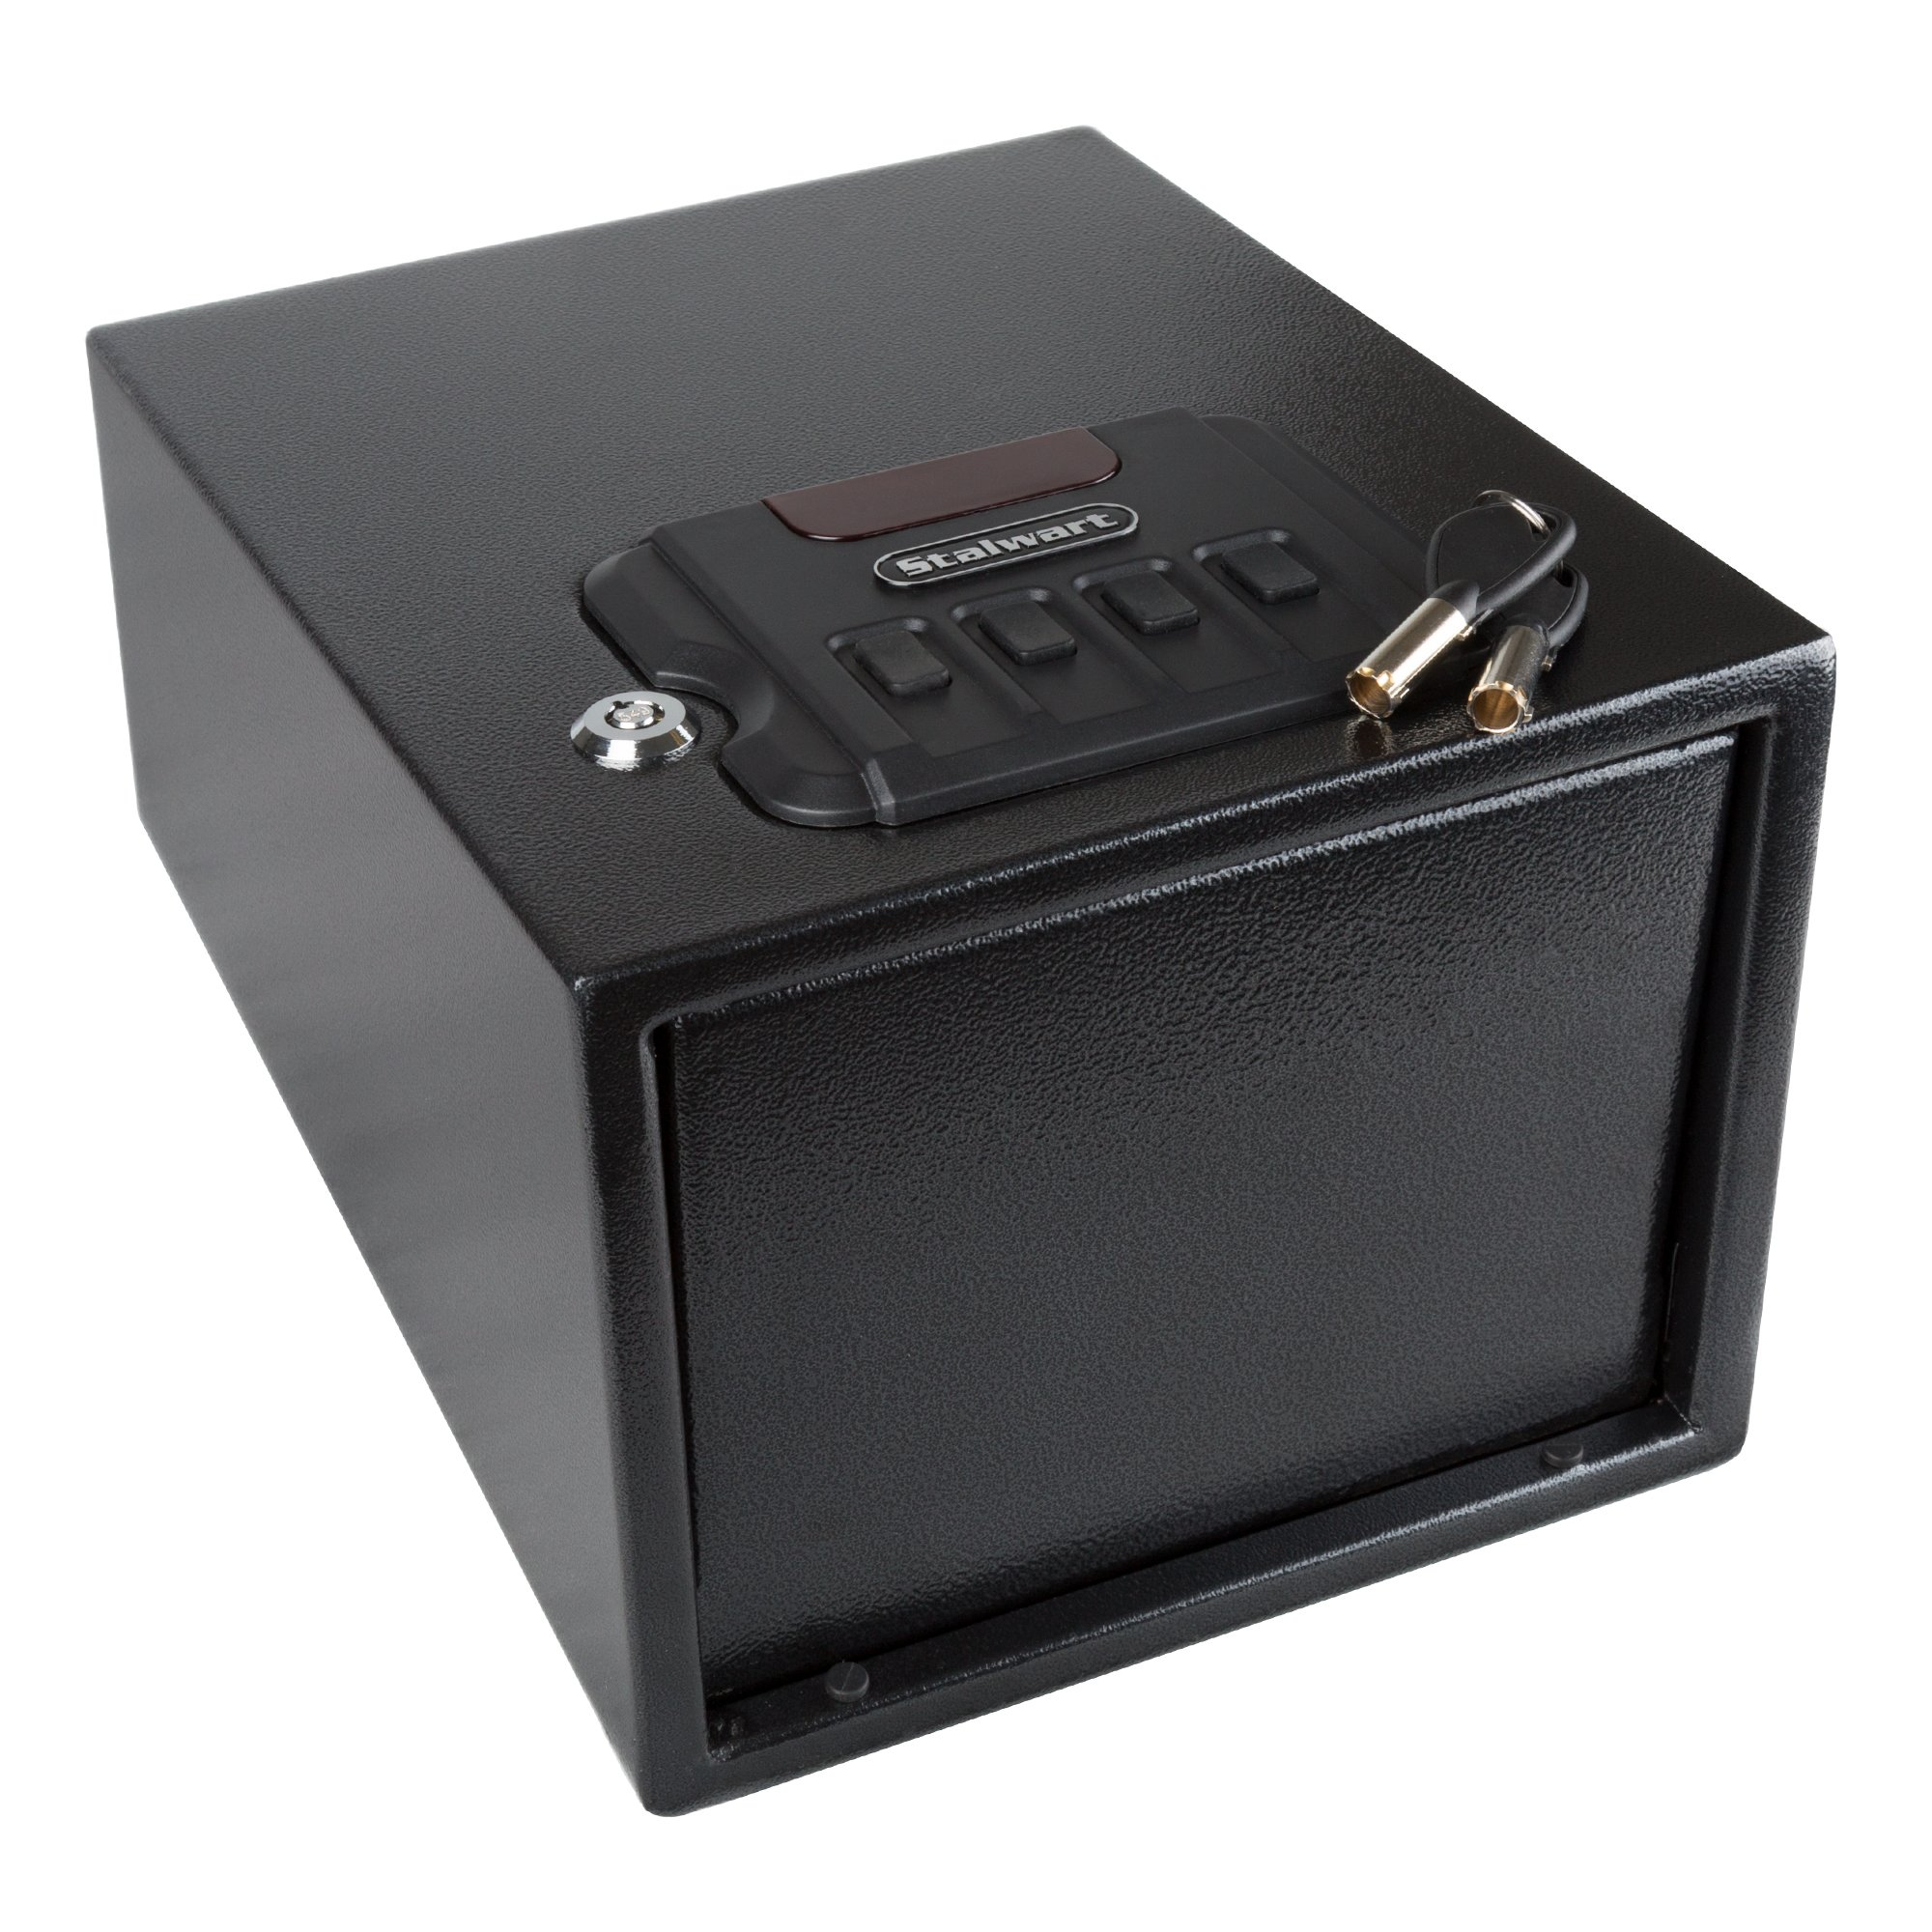 Gun Safe with Digital Lock and Manual Override Keys- 1.2 mm Thick Walls, 1.5 mm Thick Spring Loaded Door- Secure Valuables and Pistols by Stalwart